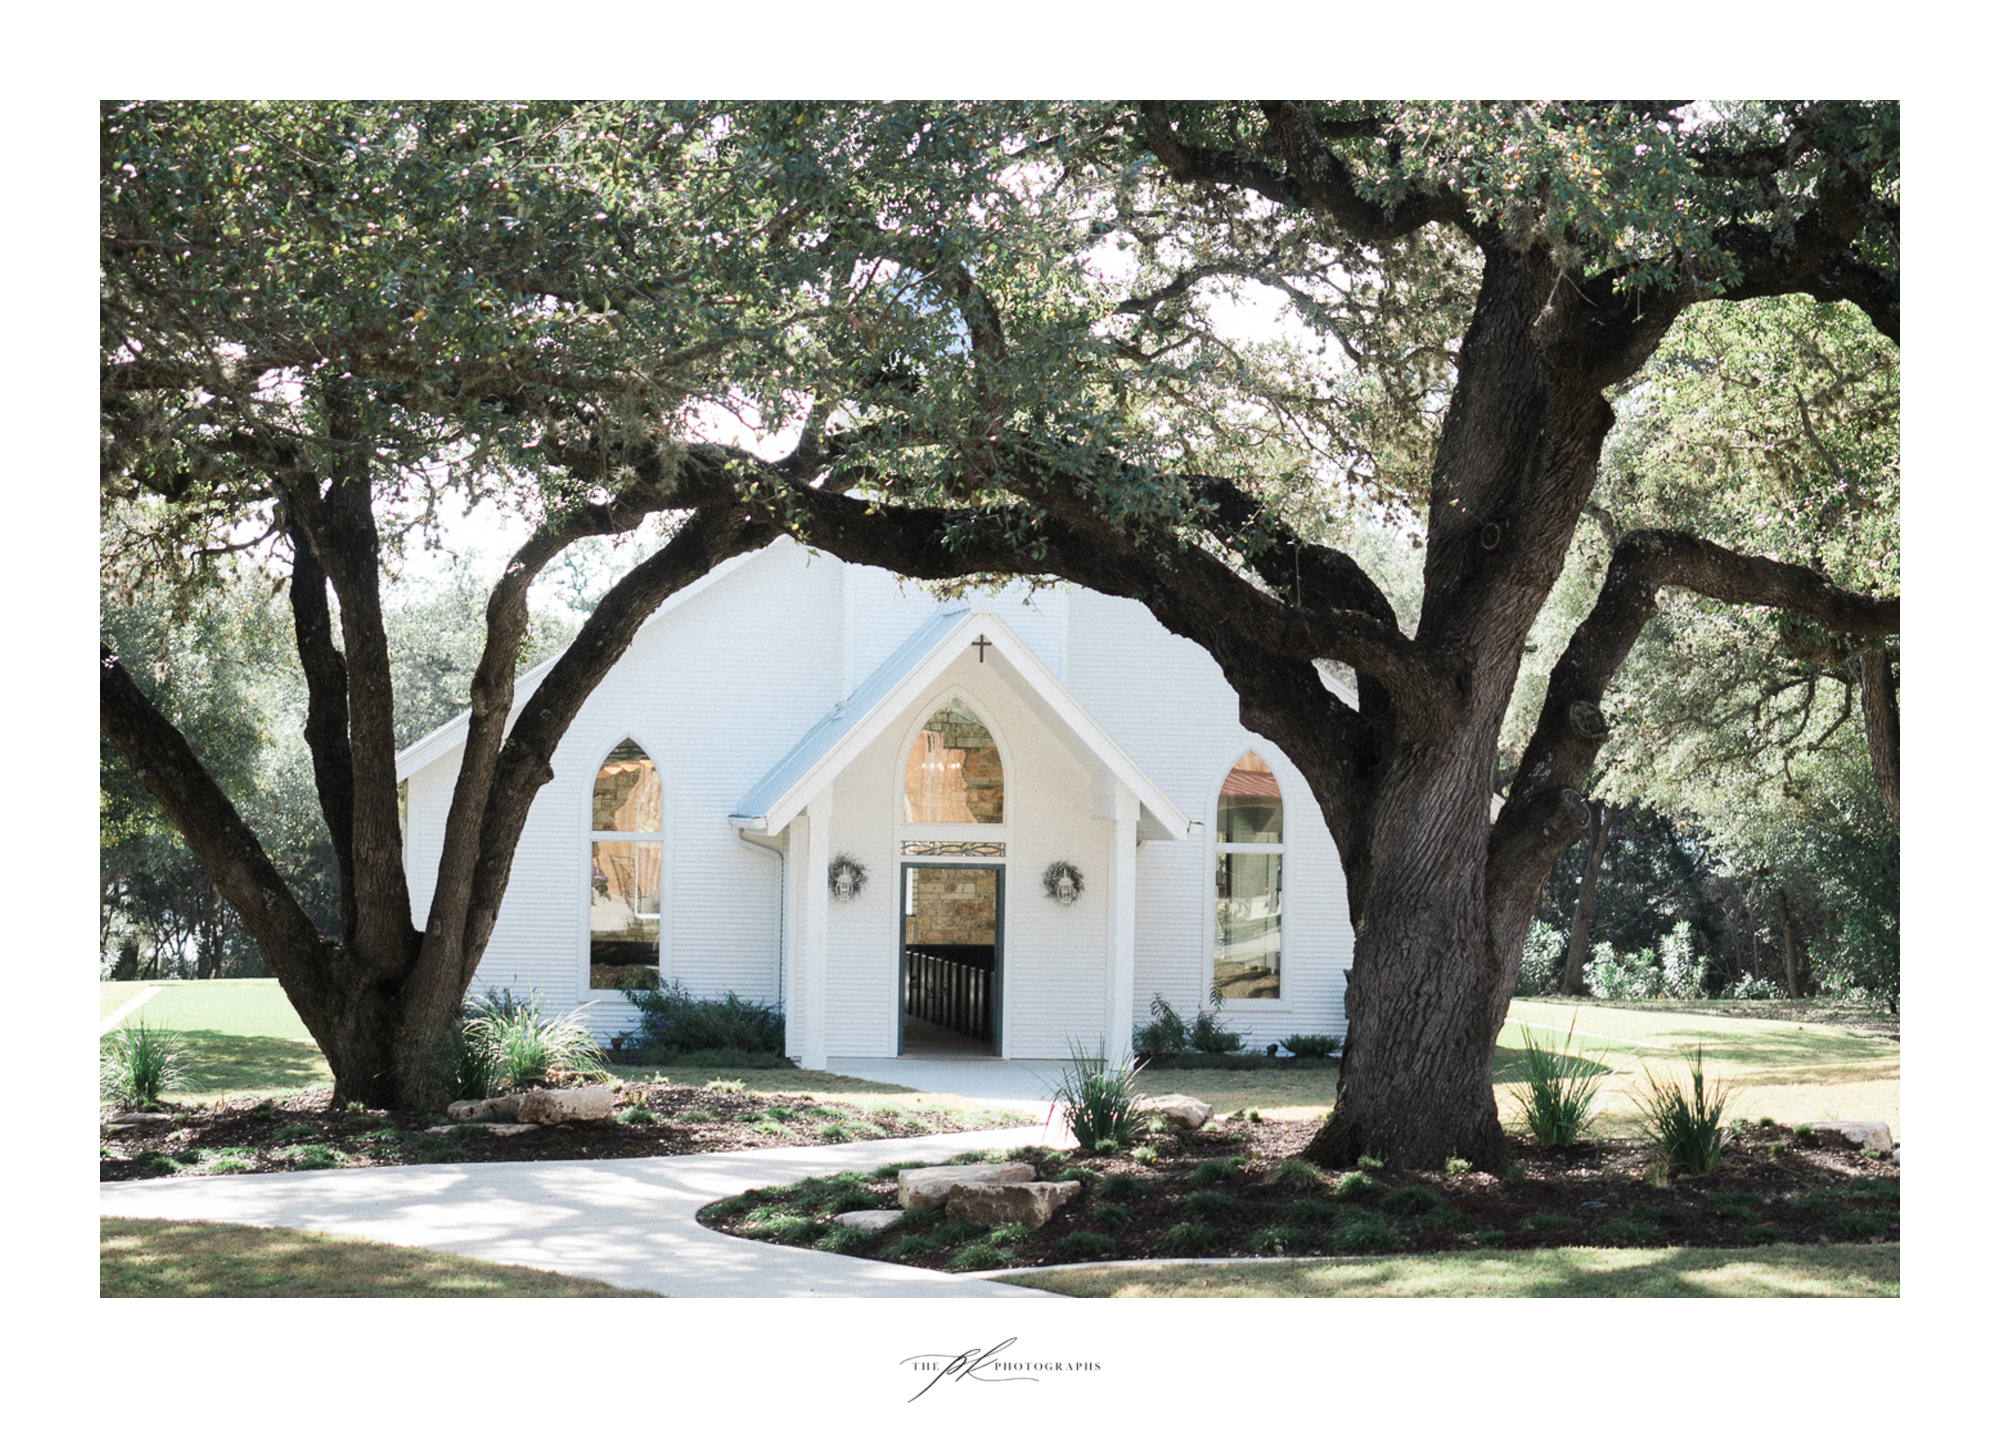 The beautiful open air chapel at the Chandelier of Gruene.